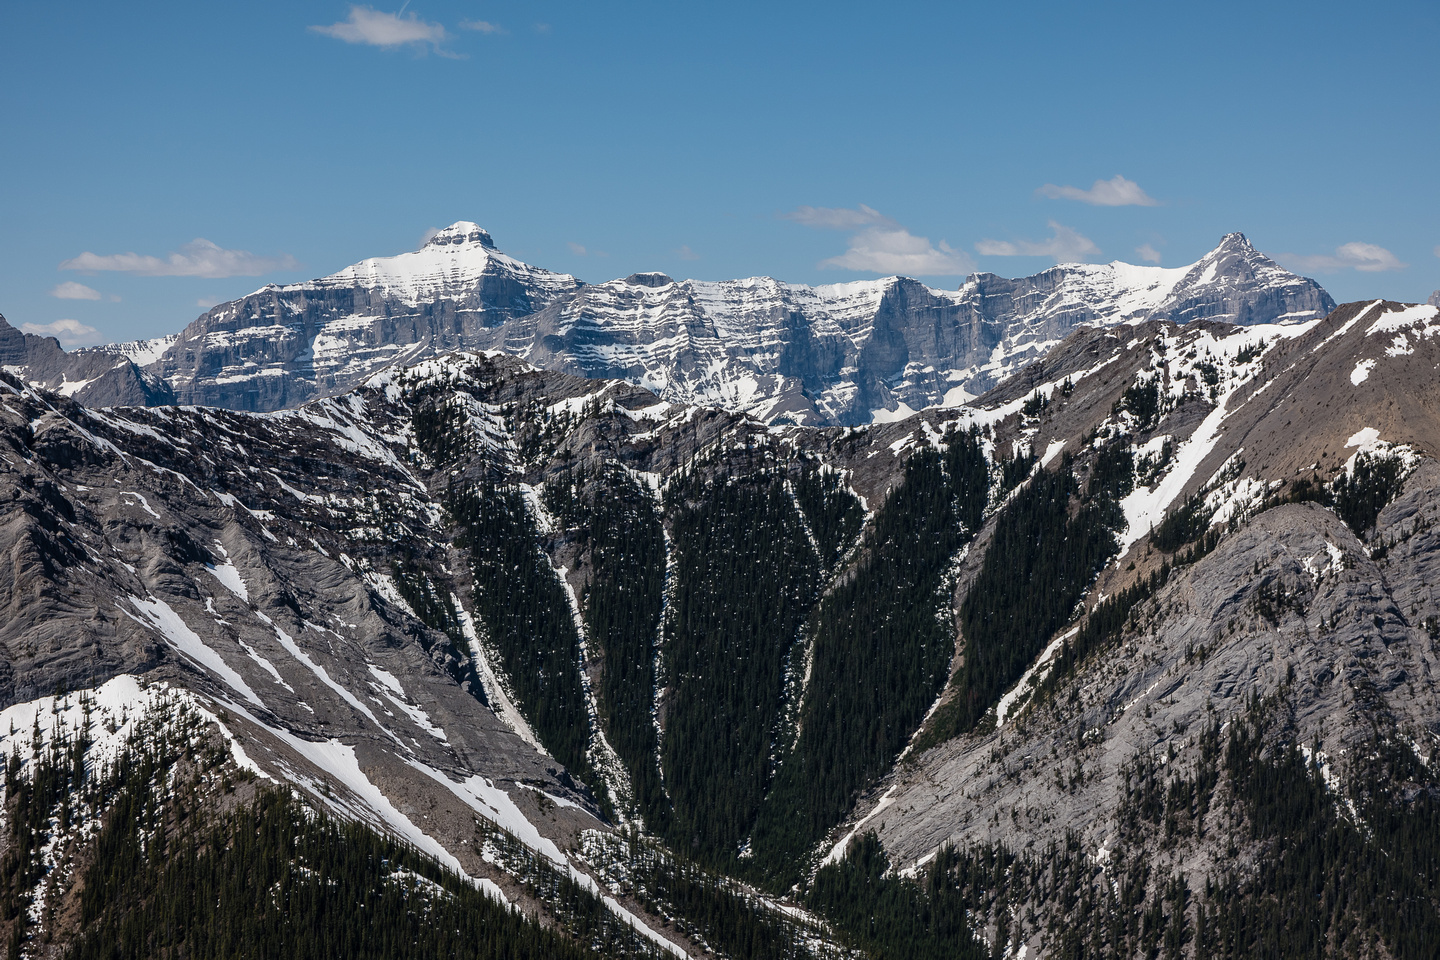 Mount Bogart, Ribbon Peak and Mount Sparrowhawk loom above Kananaskis Peak to the west.